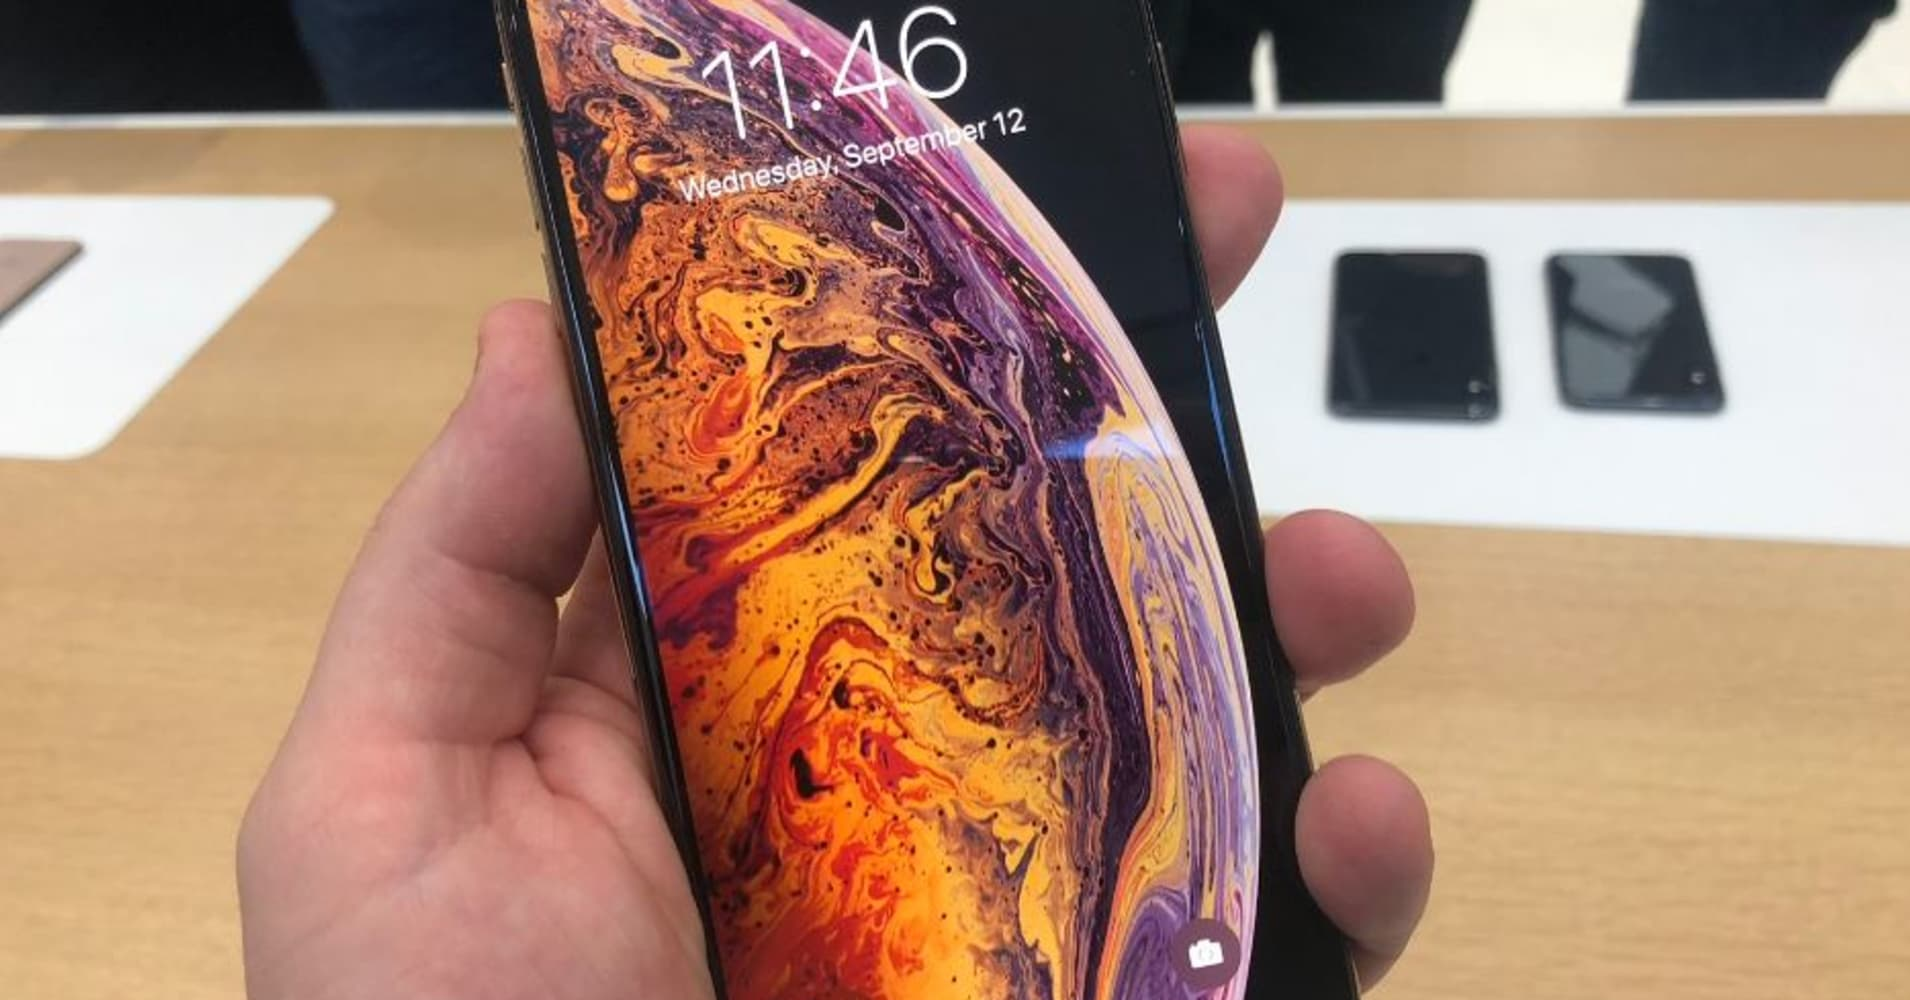 Analysts Impressed by Reception for New iPhones: 'Wow, We Did not Expect This...there were Lines'